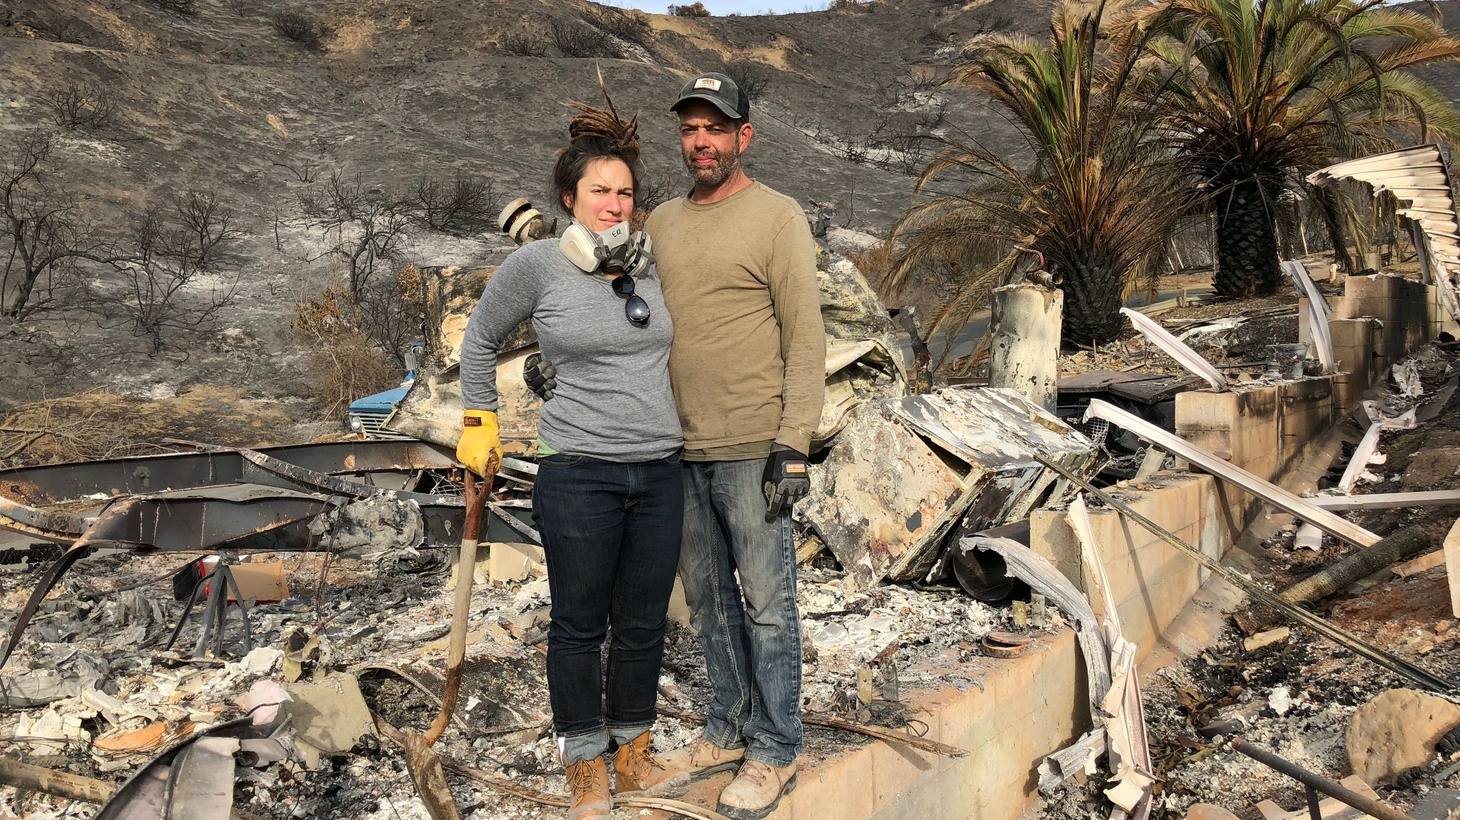 When the Thomas Fire hit the city limits, residents fled for their lives. They recall midnight evacuations and near misses.